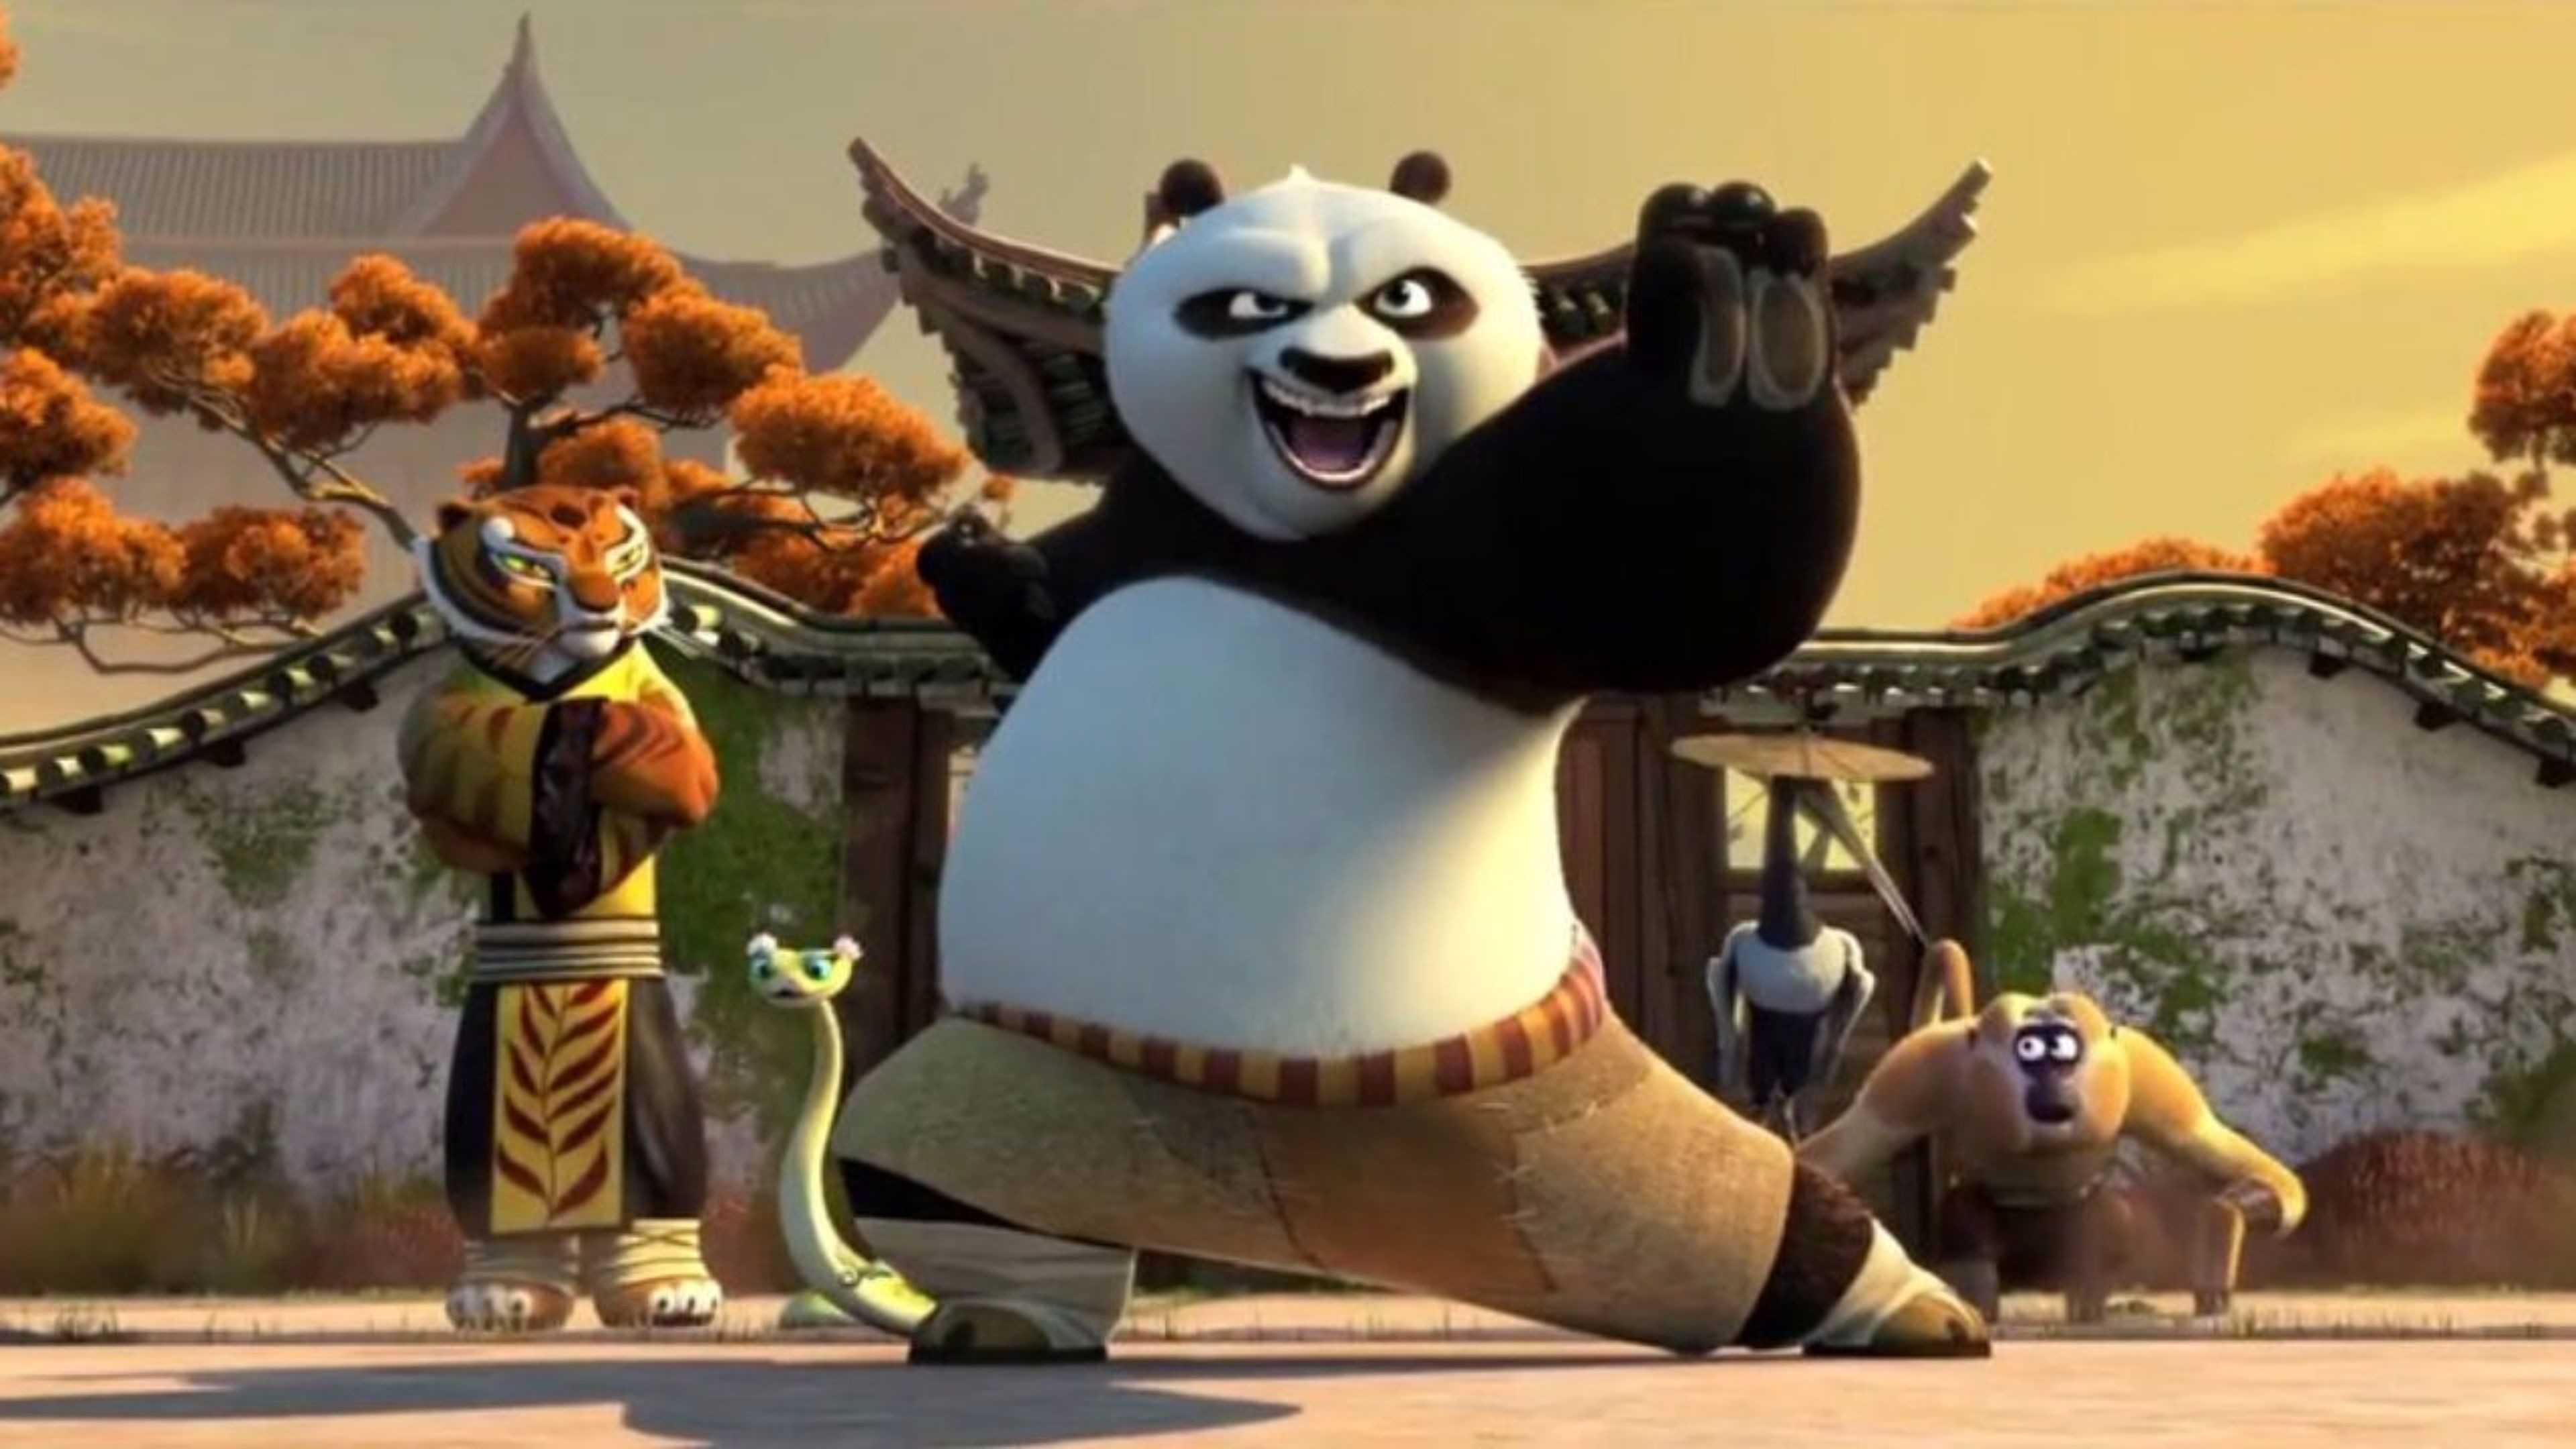 Kung Fu Panda 3 Wallpapers 82 Images